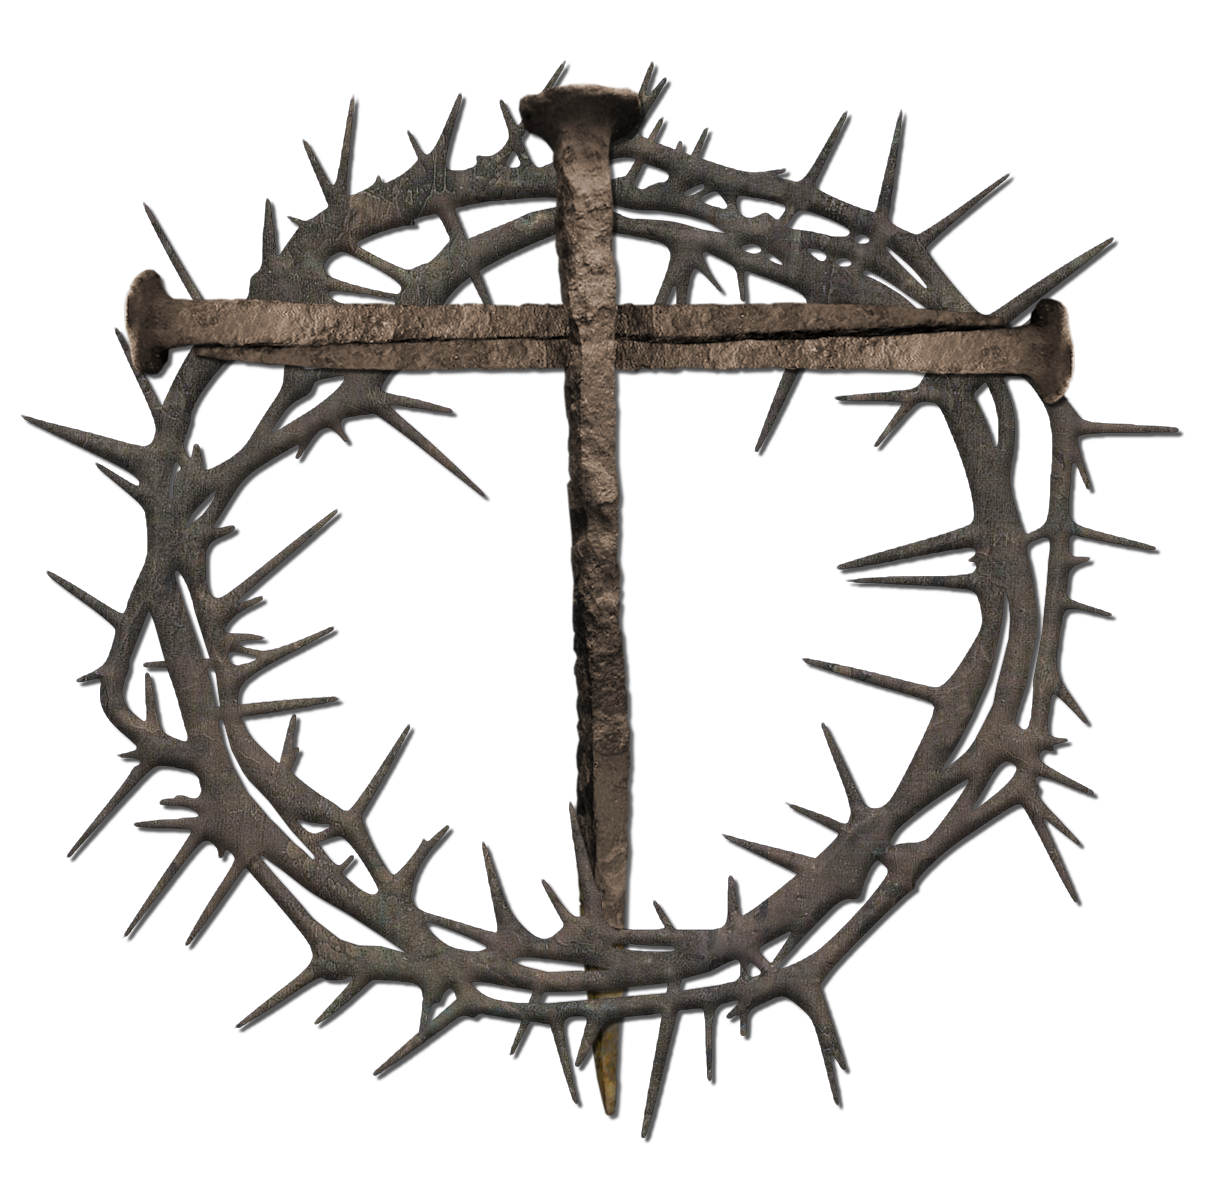 Clip Arts Related To : Jesus on cross with crown of thorns clipart - Crown Of Thorns PNG HD